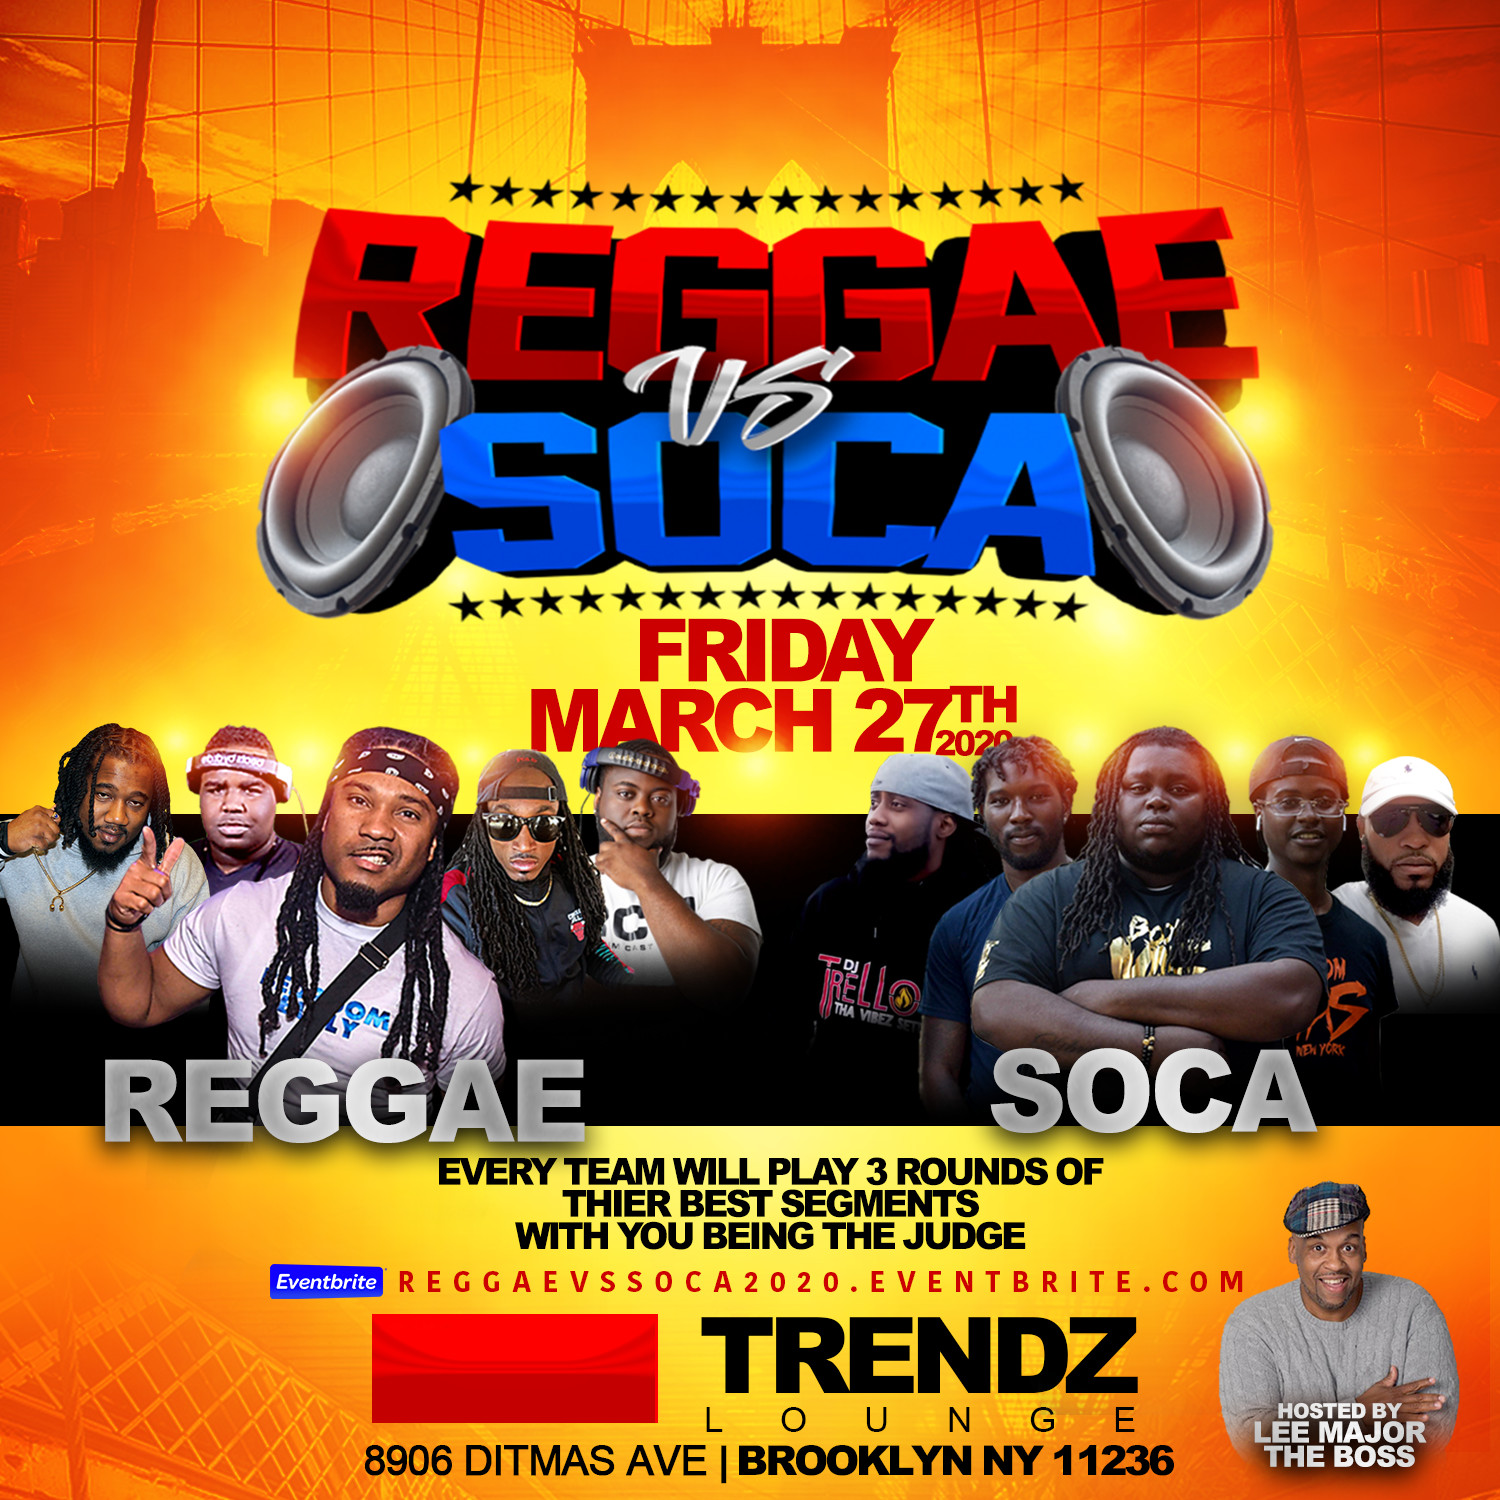 Reggae vs Soca